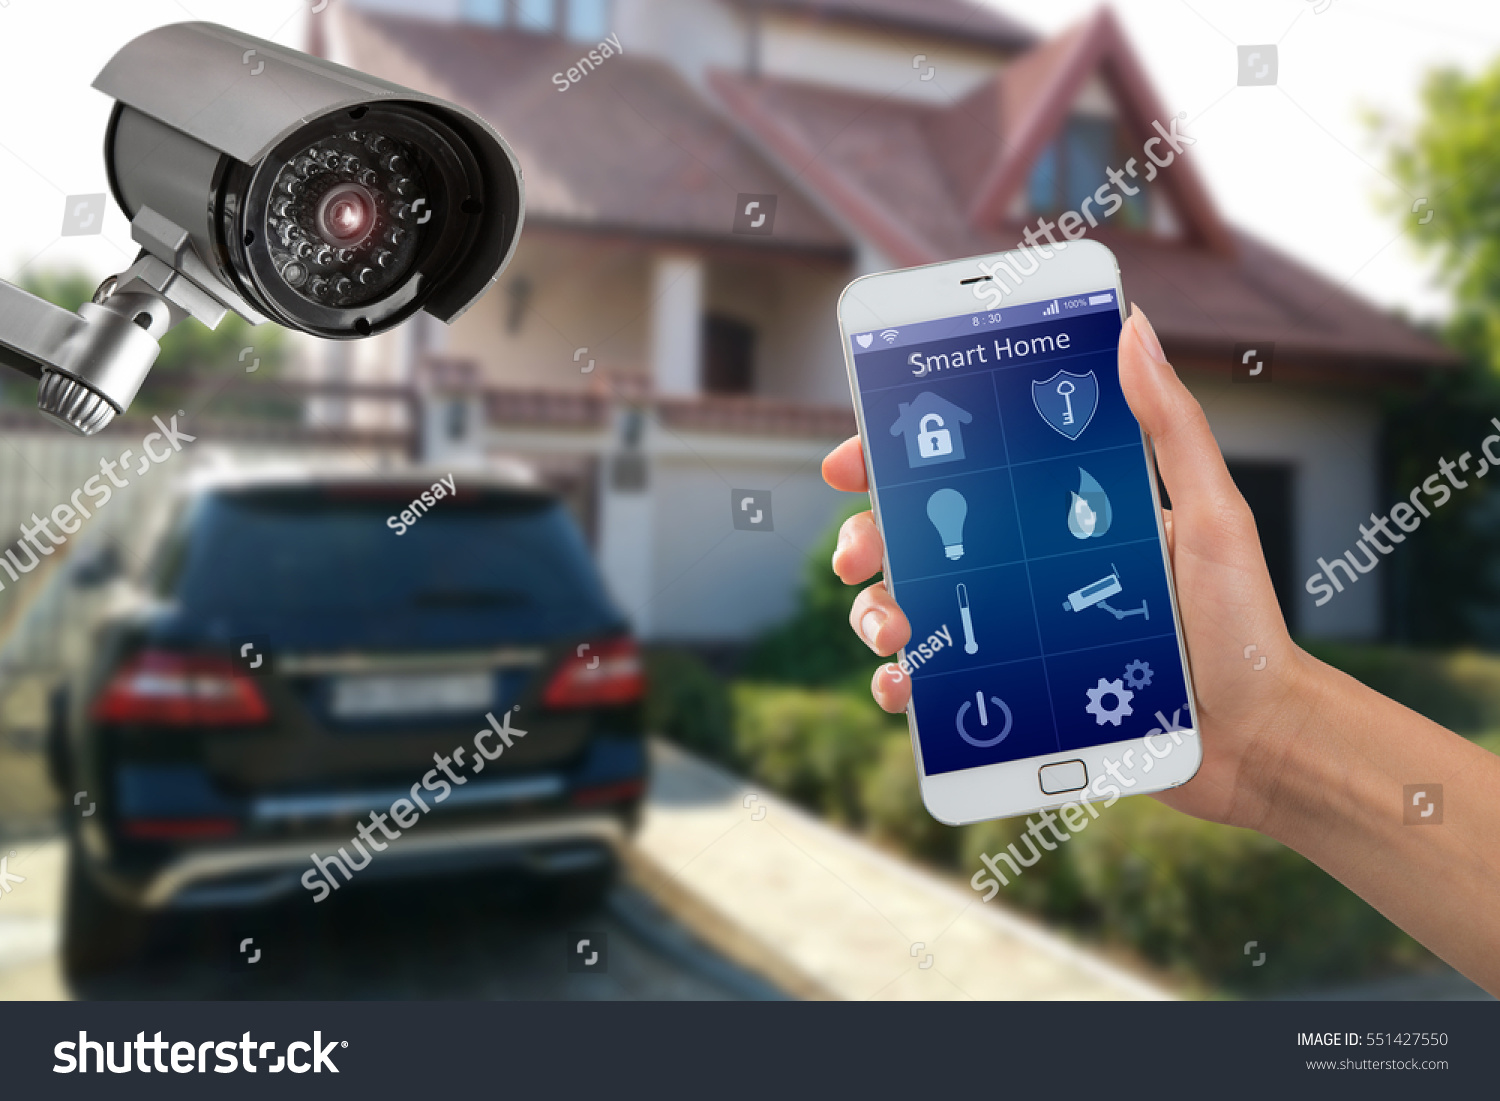 Security camera smart home app private stock photo 551427550 security camera and smart home app private house on the background buycottarizona Gallery